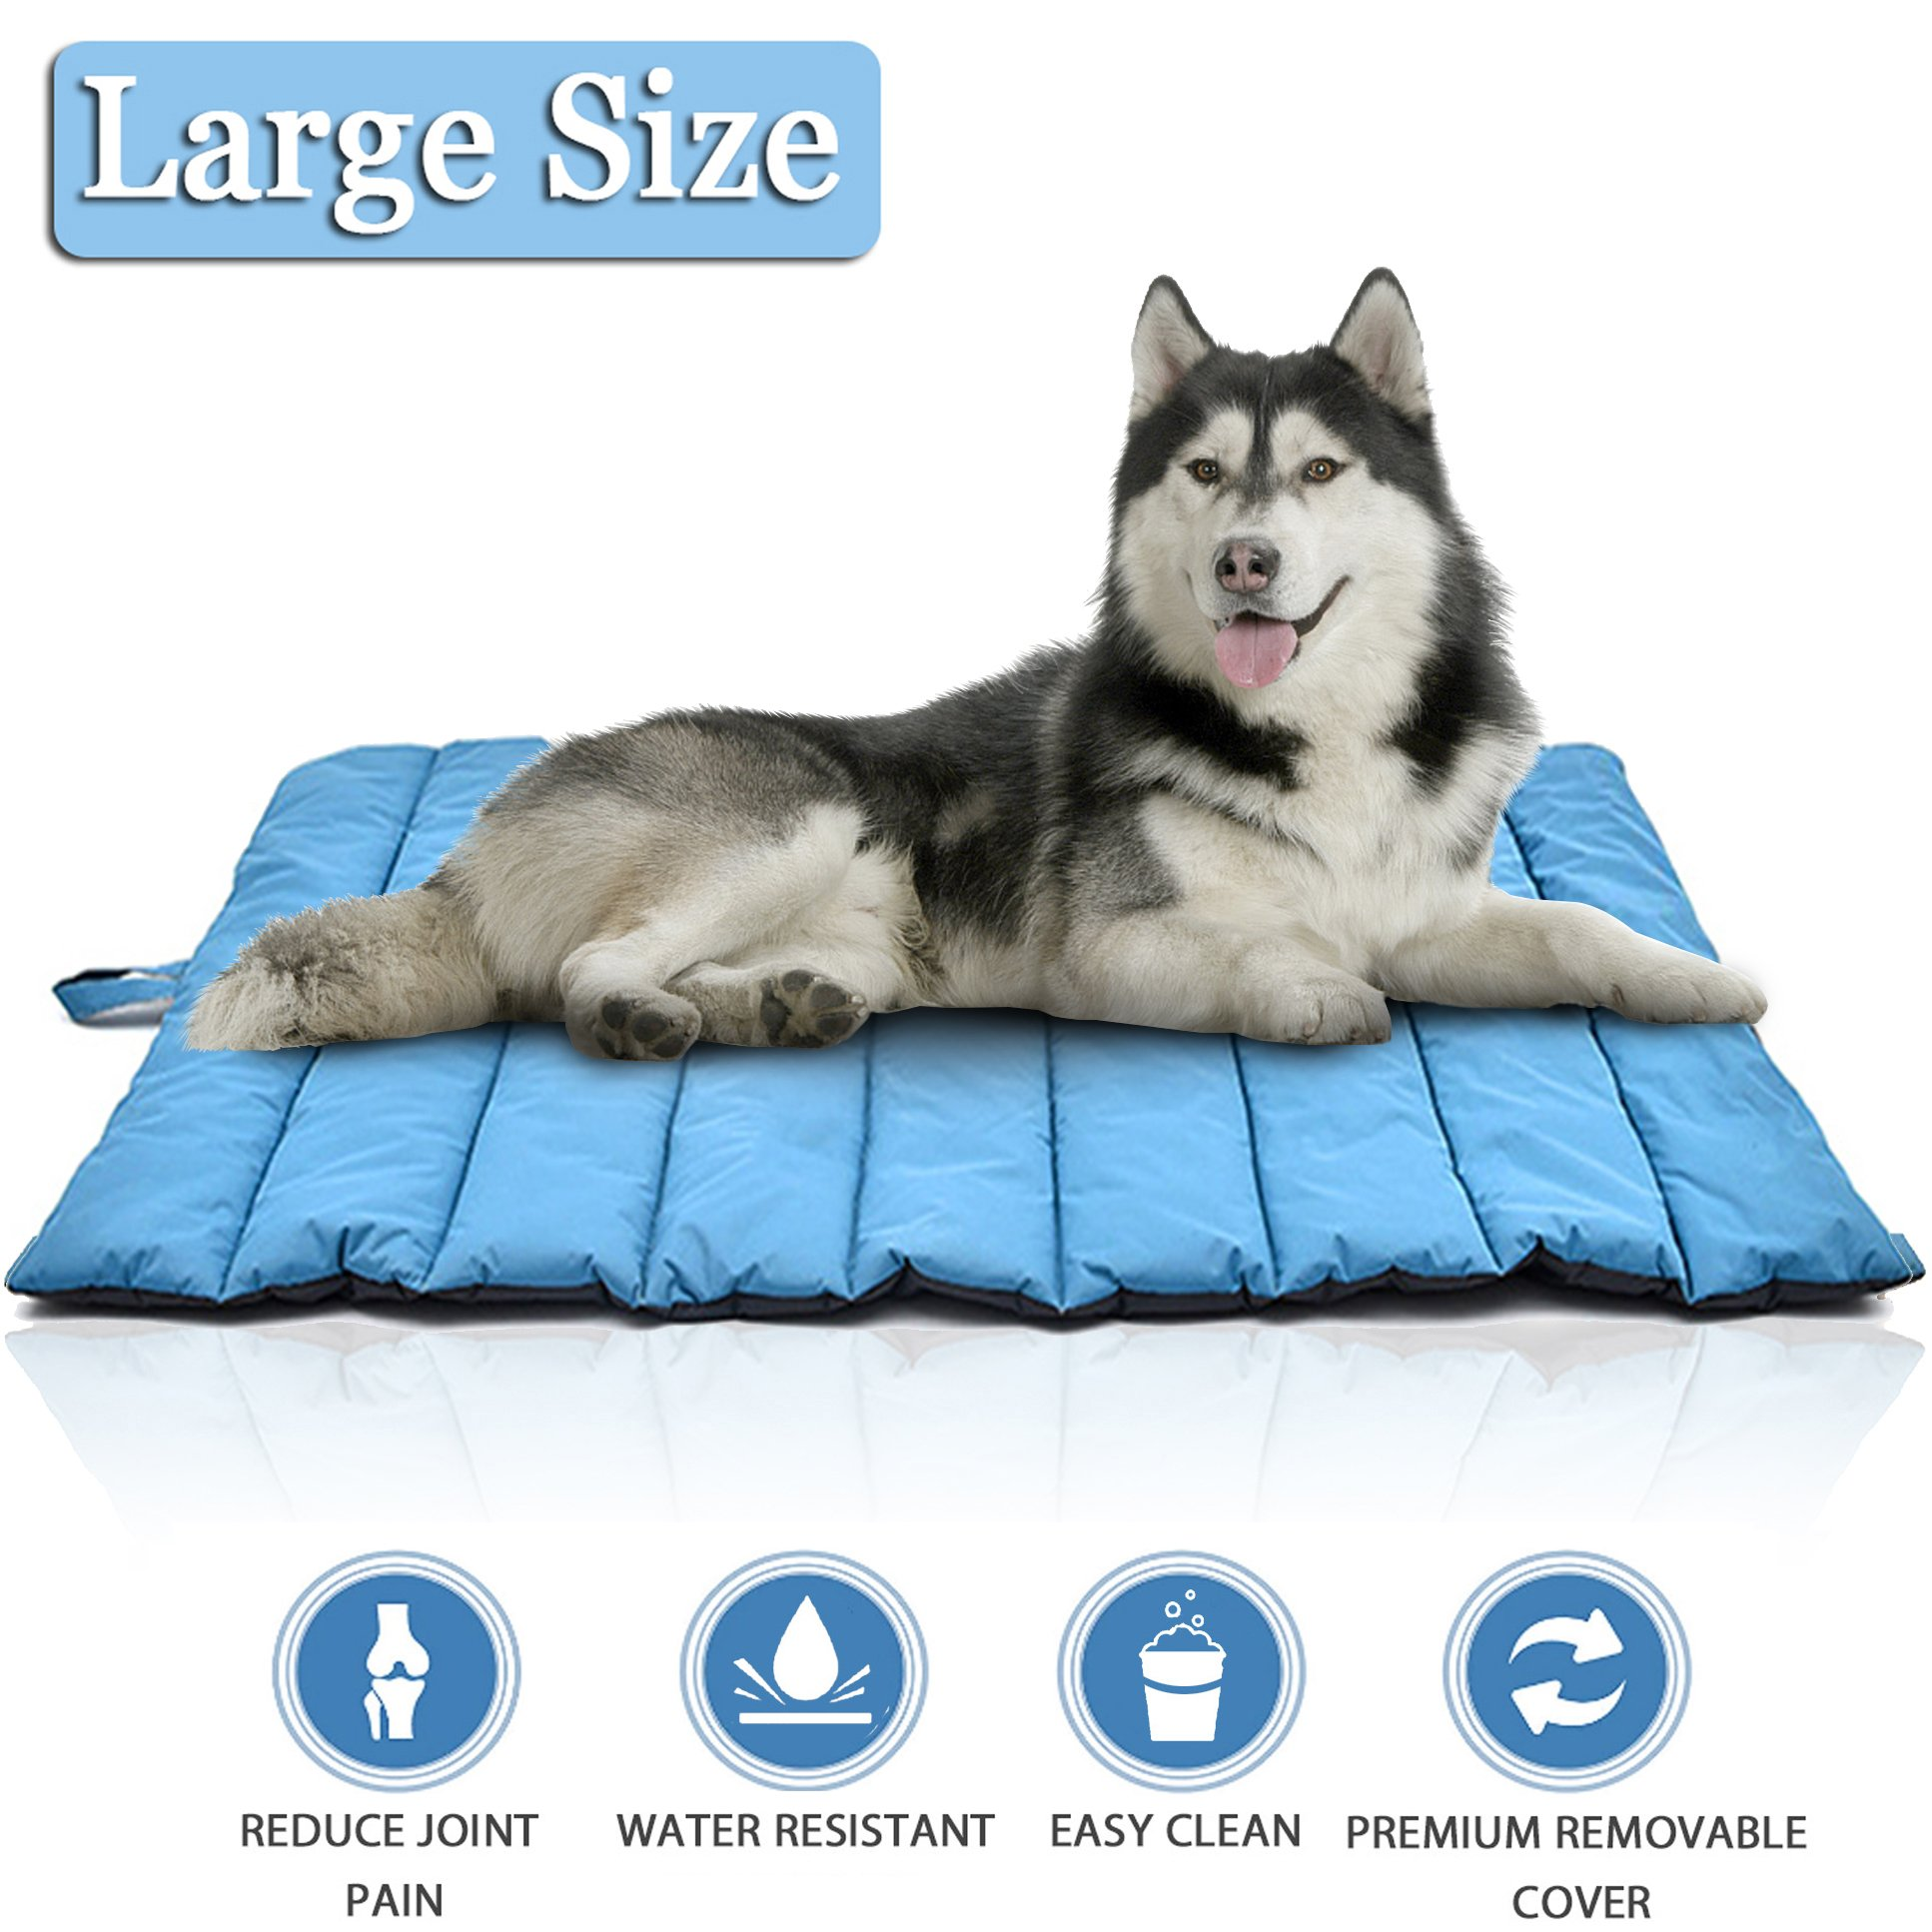 Lifepul Pets Bed Mat-Premium Ultra Soft Dog&Cat Bed Cover In Large Size, Water-Resistant Puppy Cat Bed Blankets for Indoor Outdoor Use - Perfect for Funiture, Floors, Car Seats, Lawn, Couches